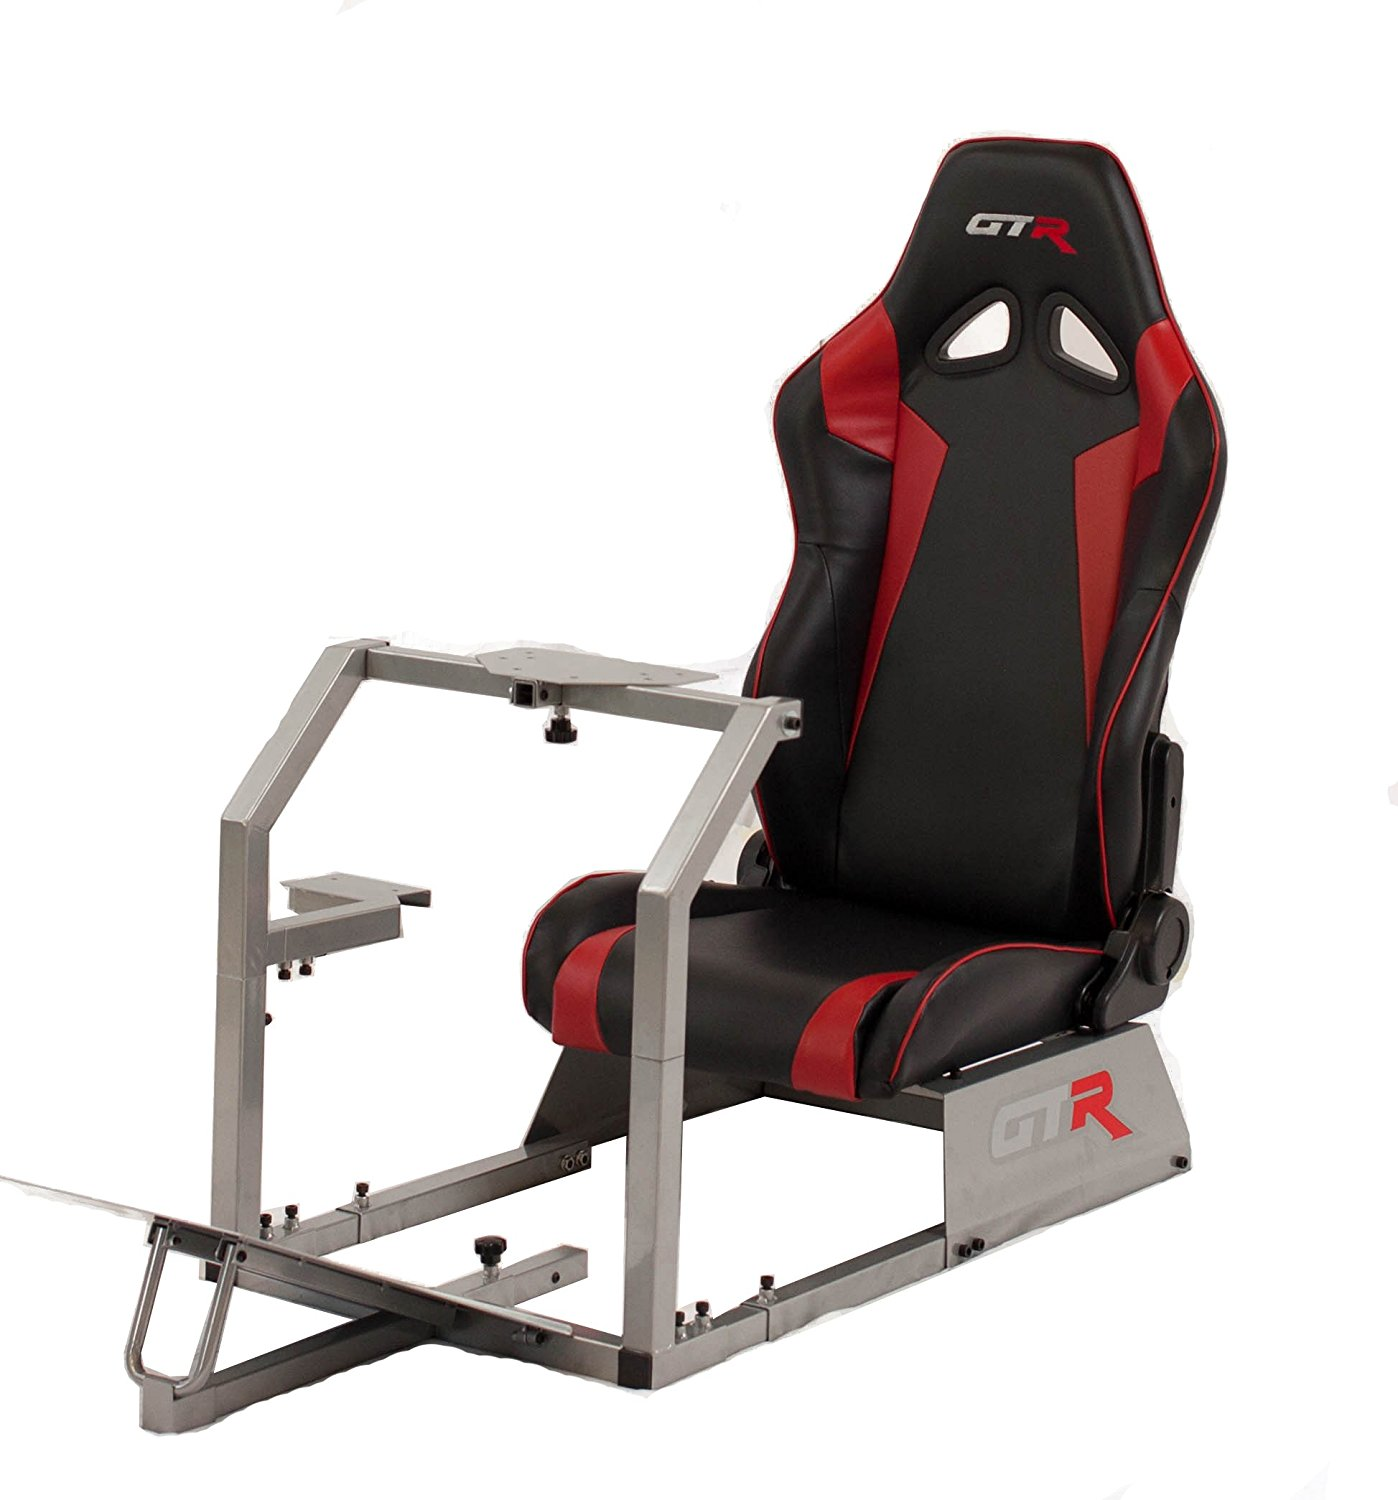 GTR Racing Simulator GTA-S-S105LBLKRD GTA 2017 Model Silver Frame with Black/Red Real Racing Seat, Driving Simulator Cockpit Gaming Chair with Gear Shifter Mount